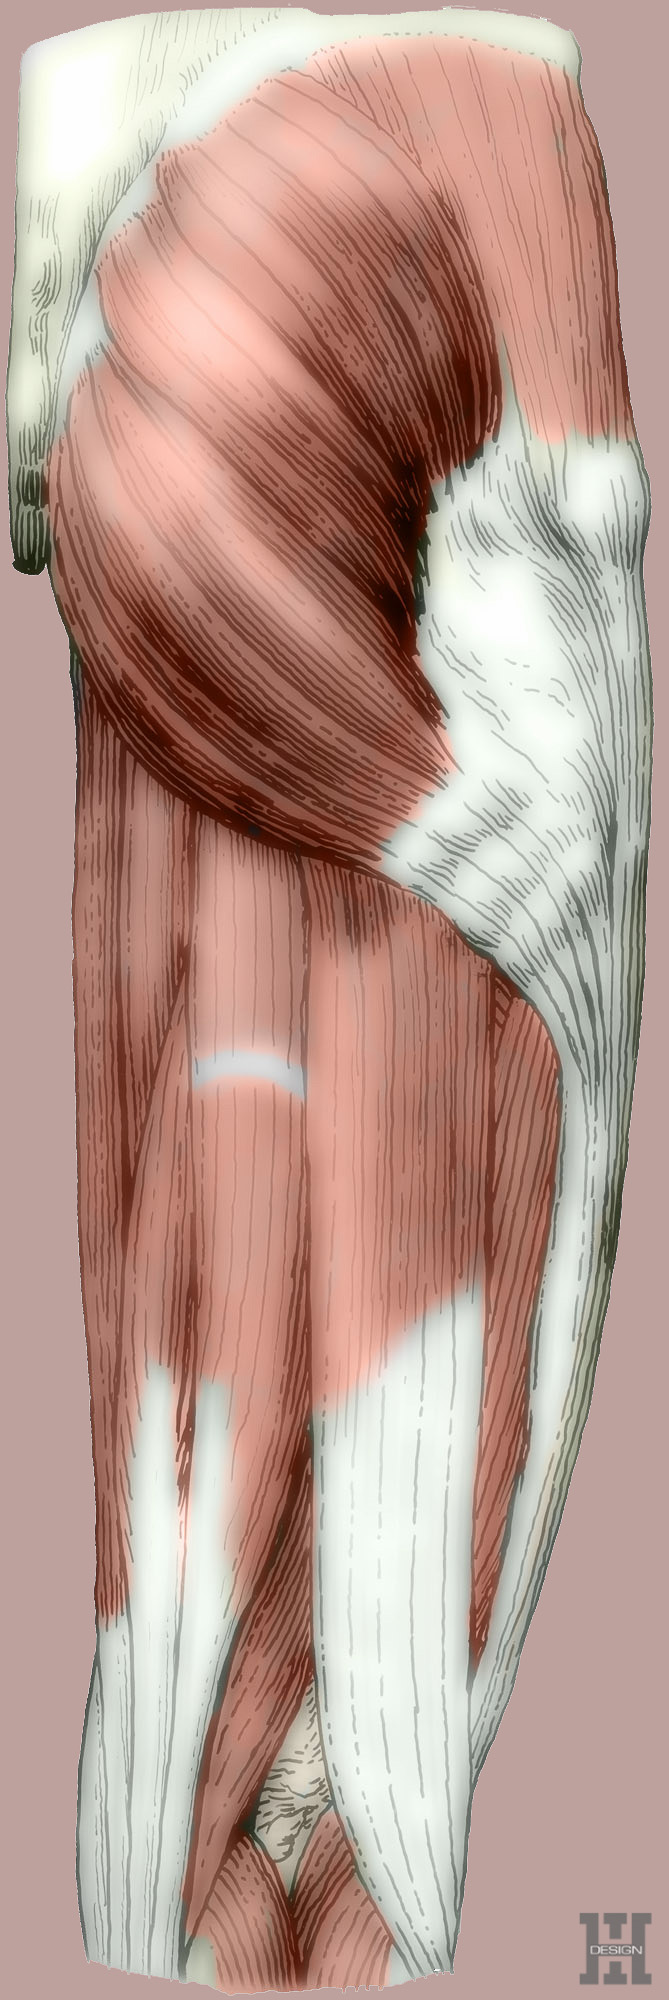 Muscles of hip and thigh, posterior view